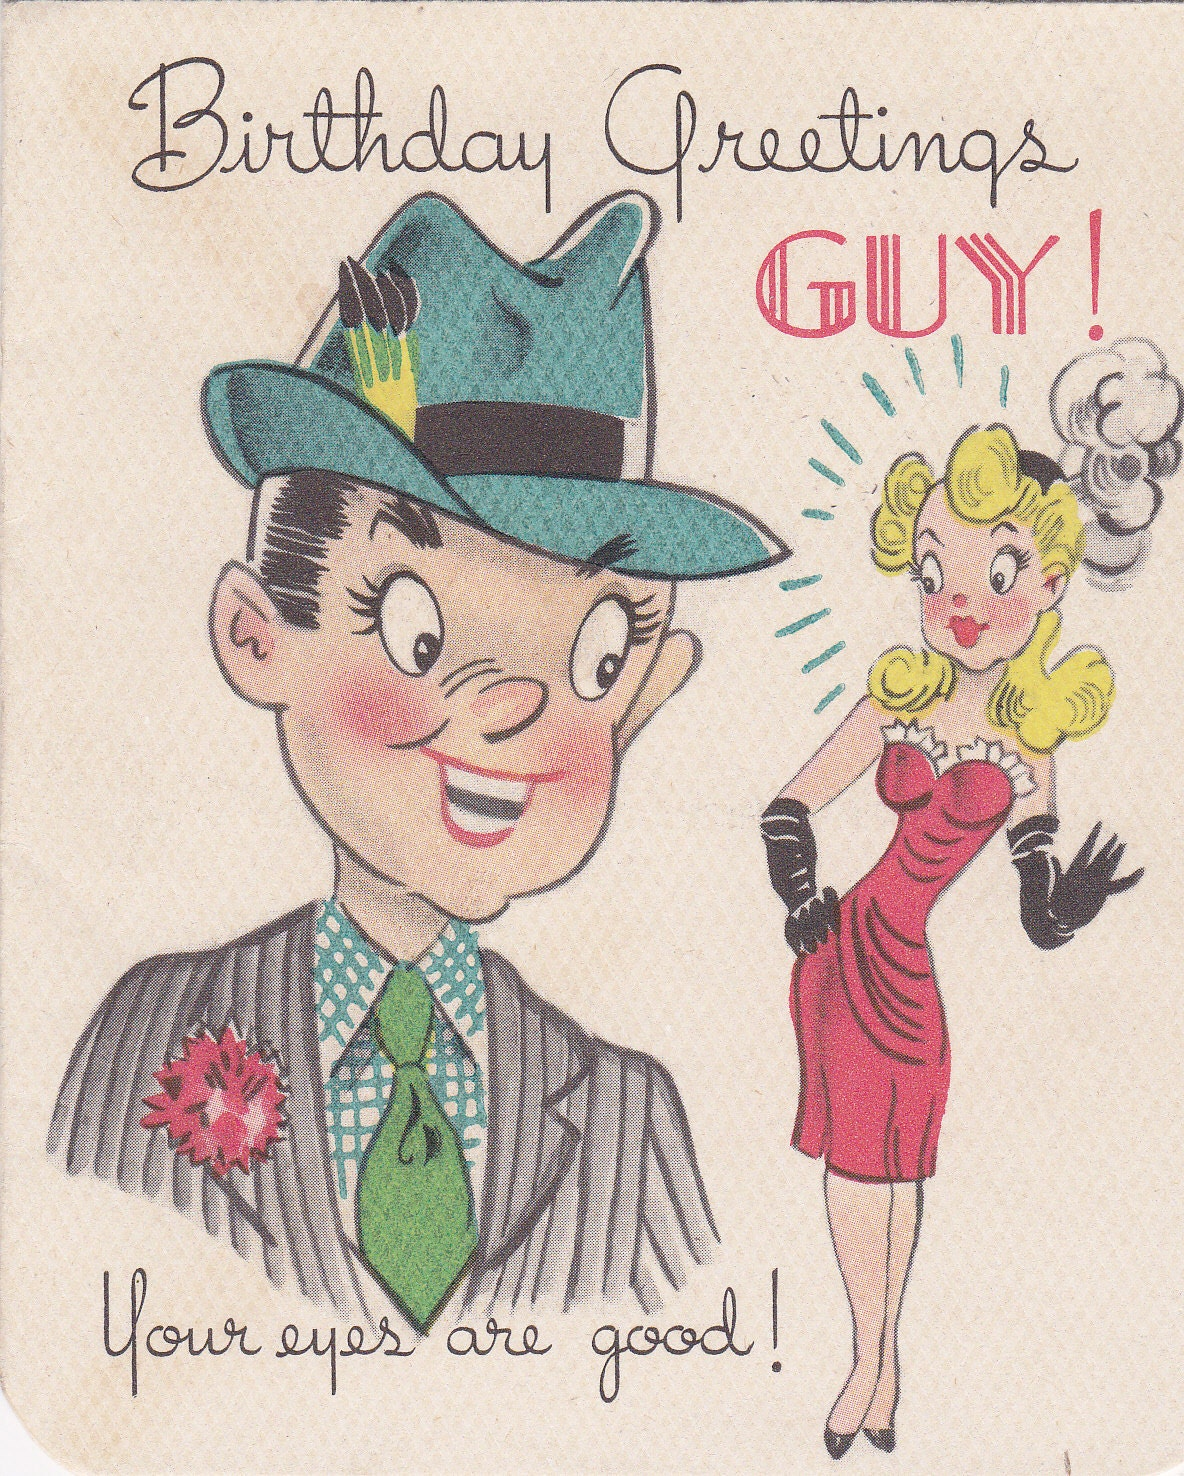 Birthday Greetings Guy Ladies' Man 1940s Vintage Gibson